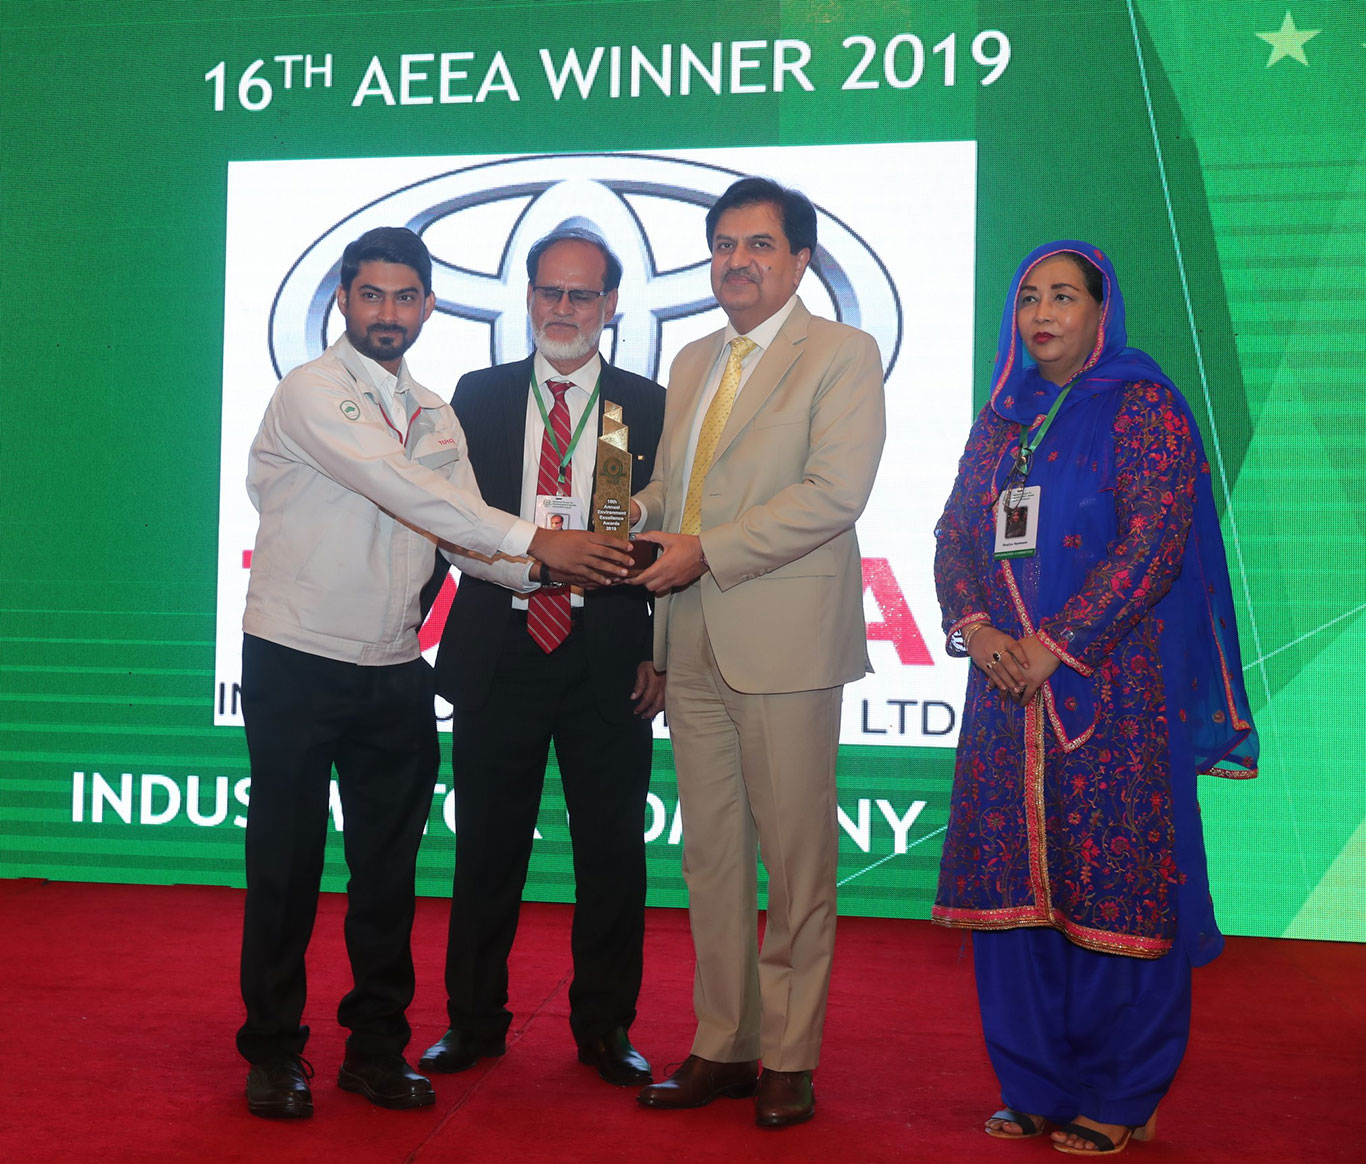 imc wins another environment award Indus Motor Company Limited